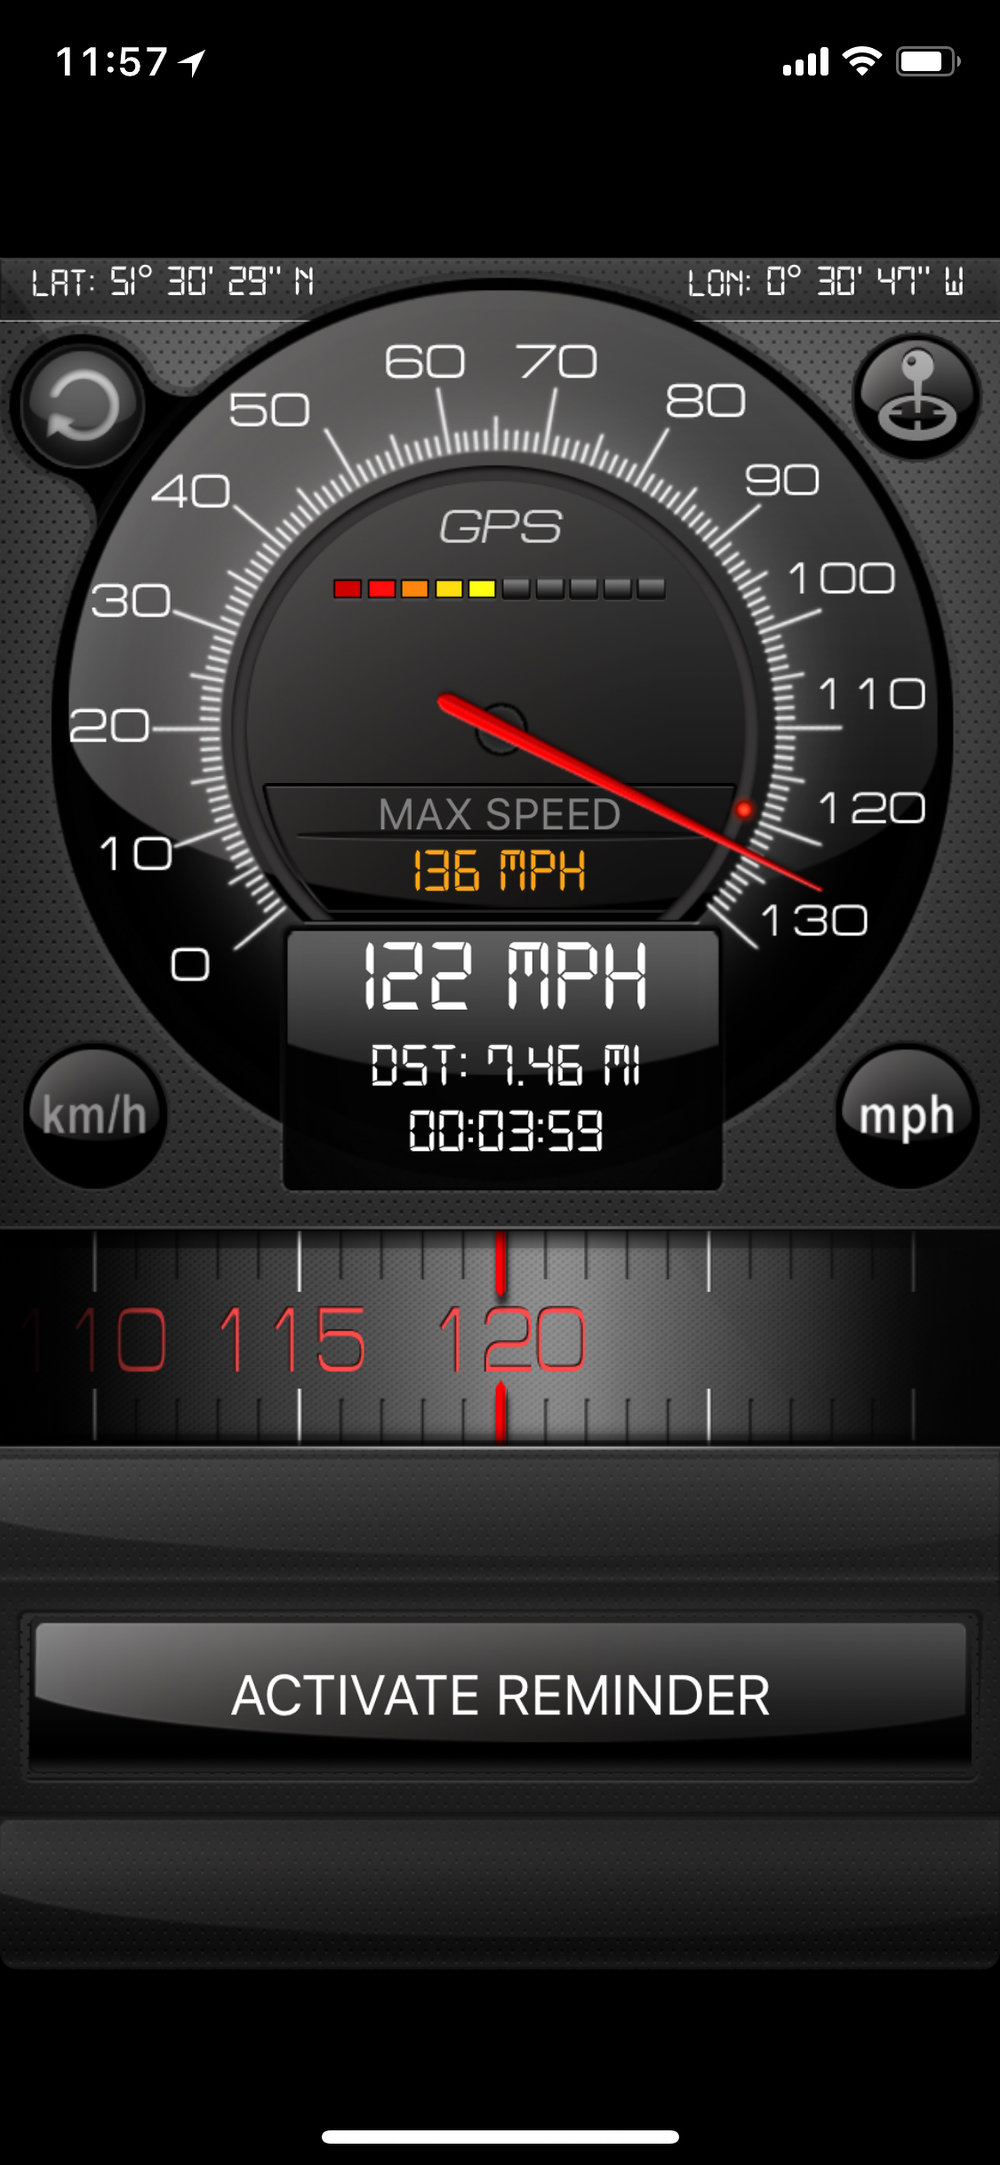 The iPhone X speed application screen shot.